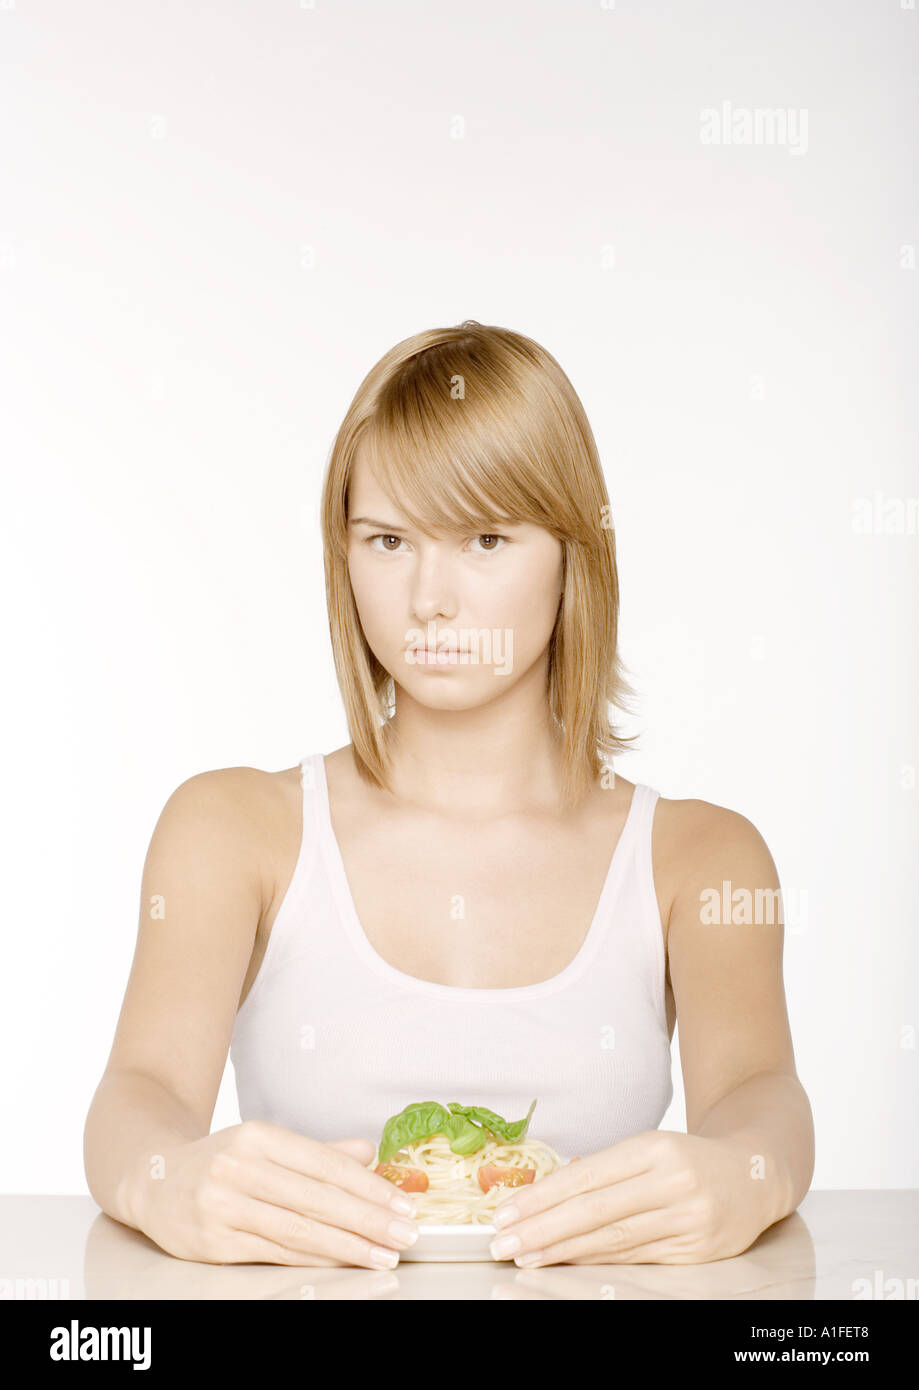 Young woman with arms around plate of pasta - Stock Image